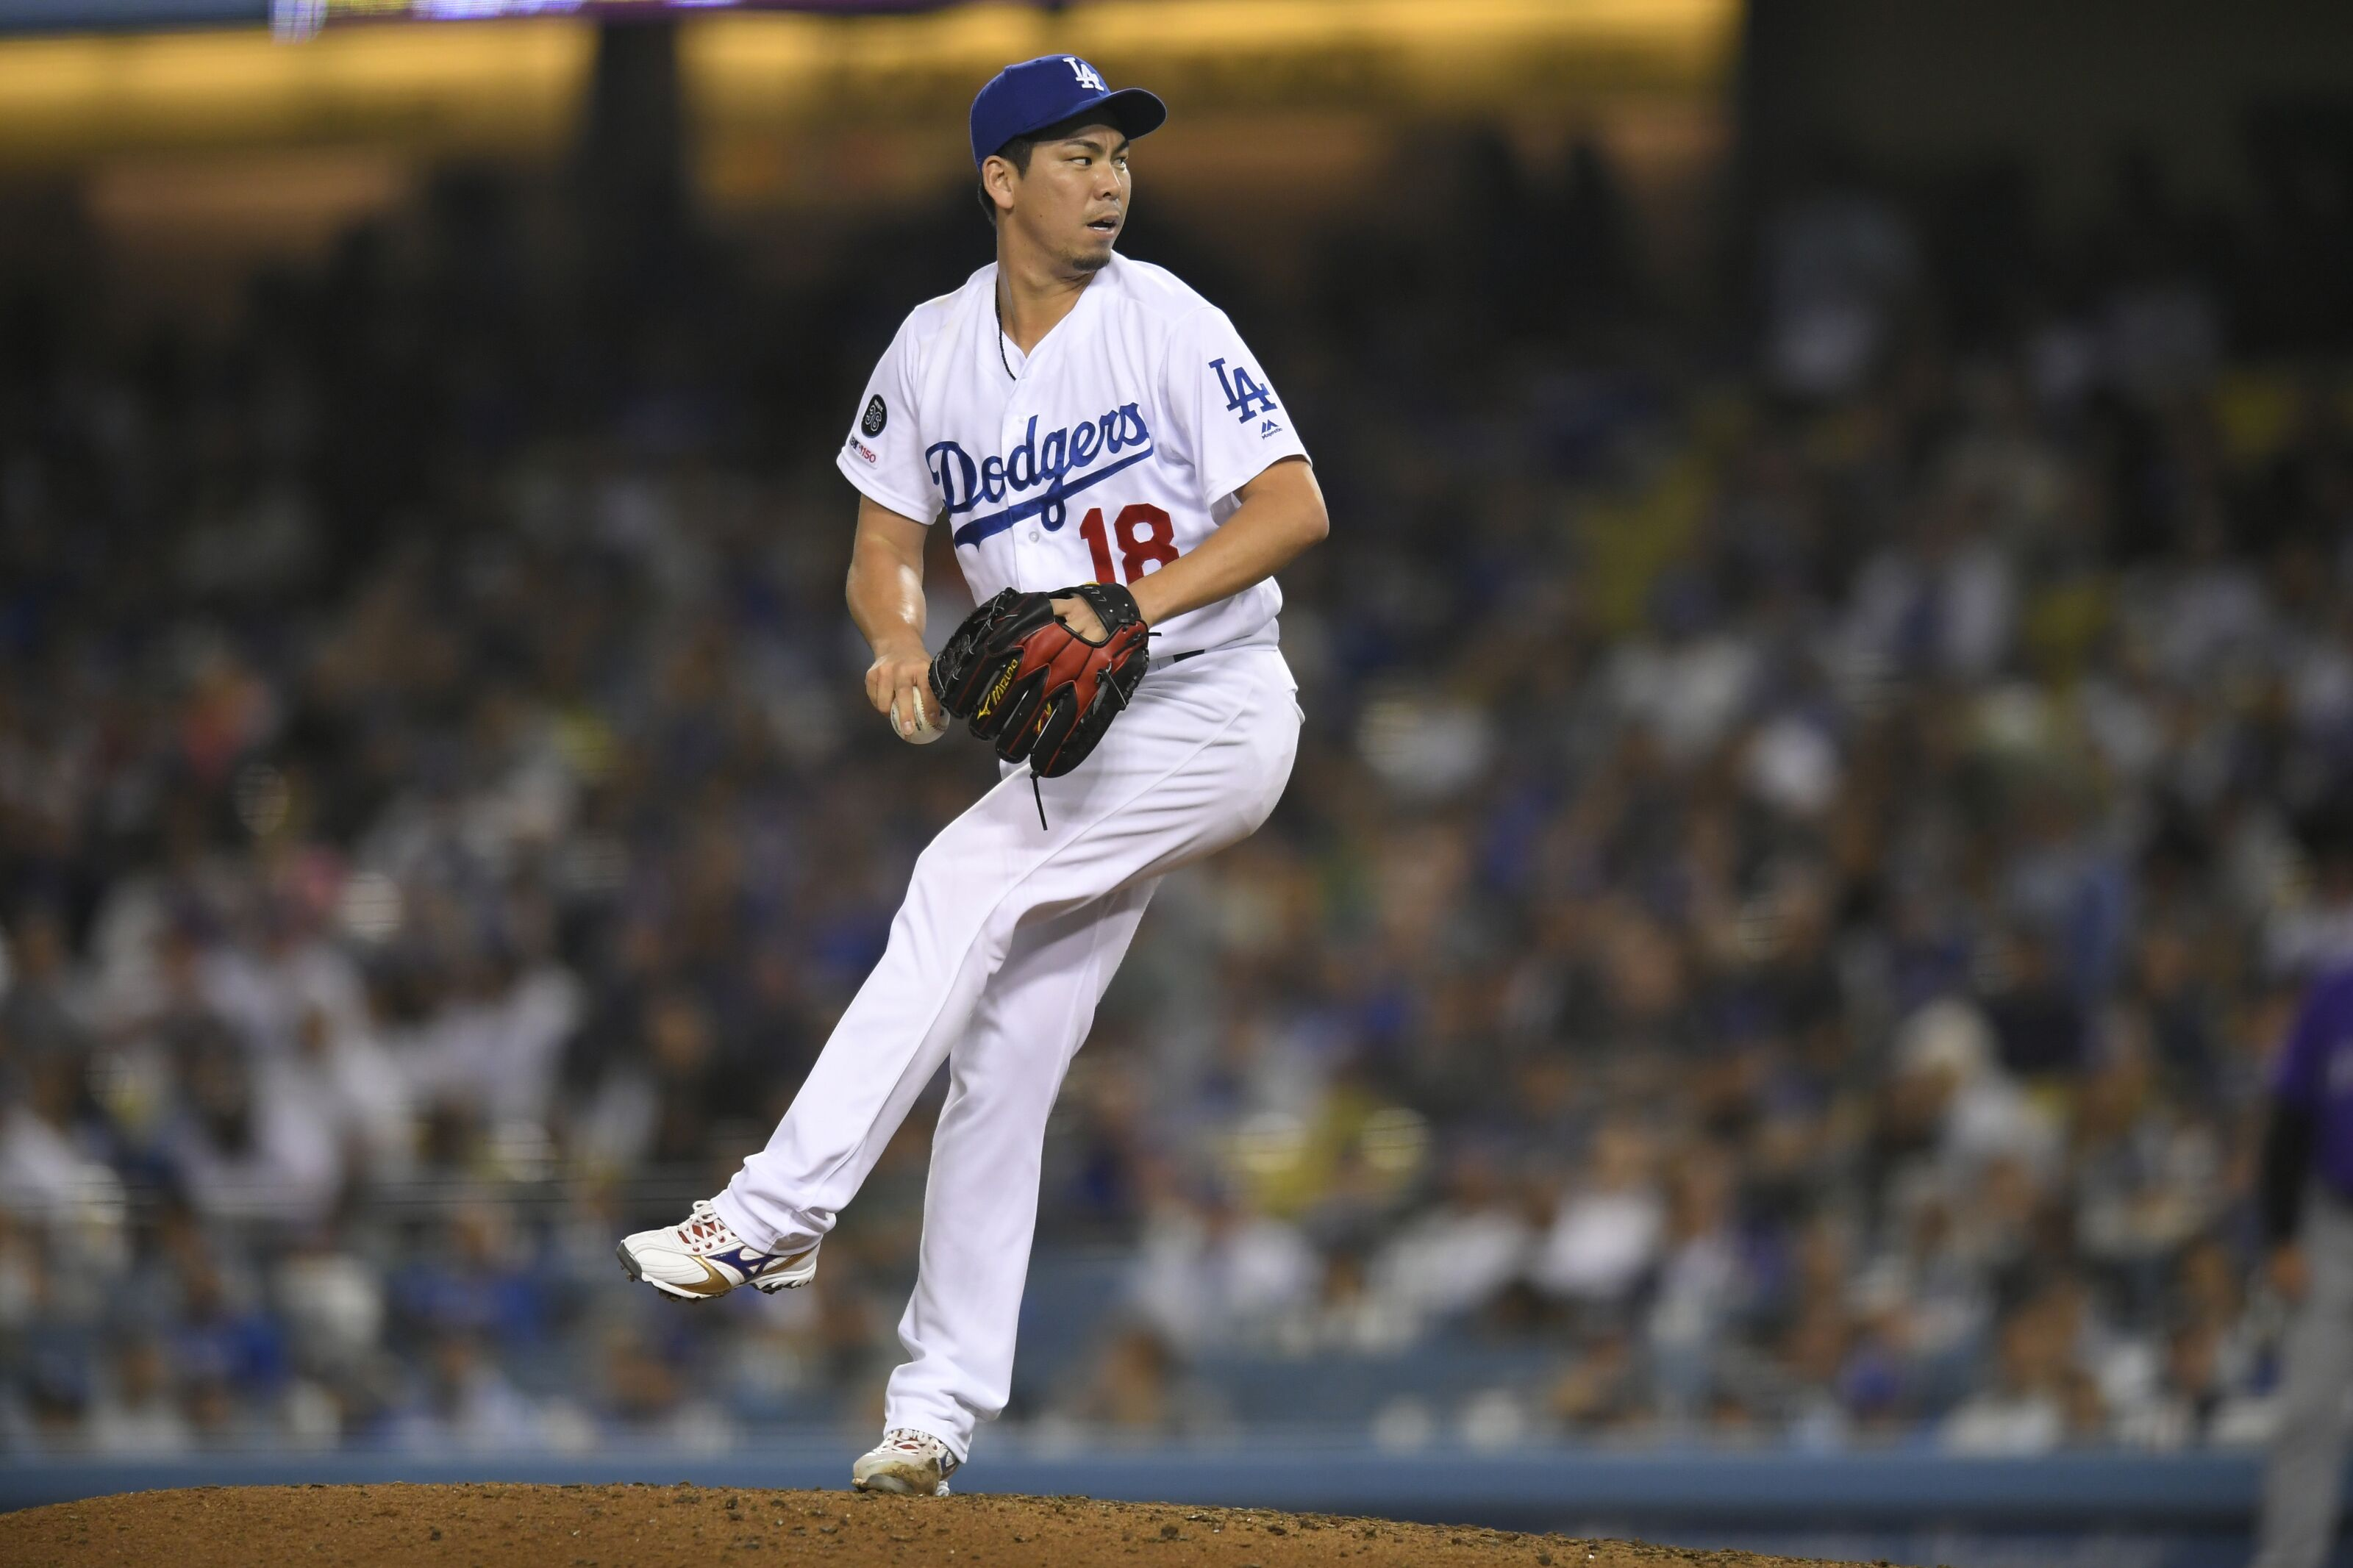 Dodgers: Kenta Maeda's importance grows with Joe Kelly ailing